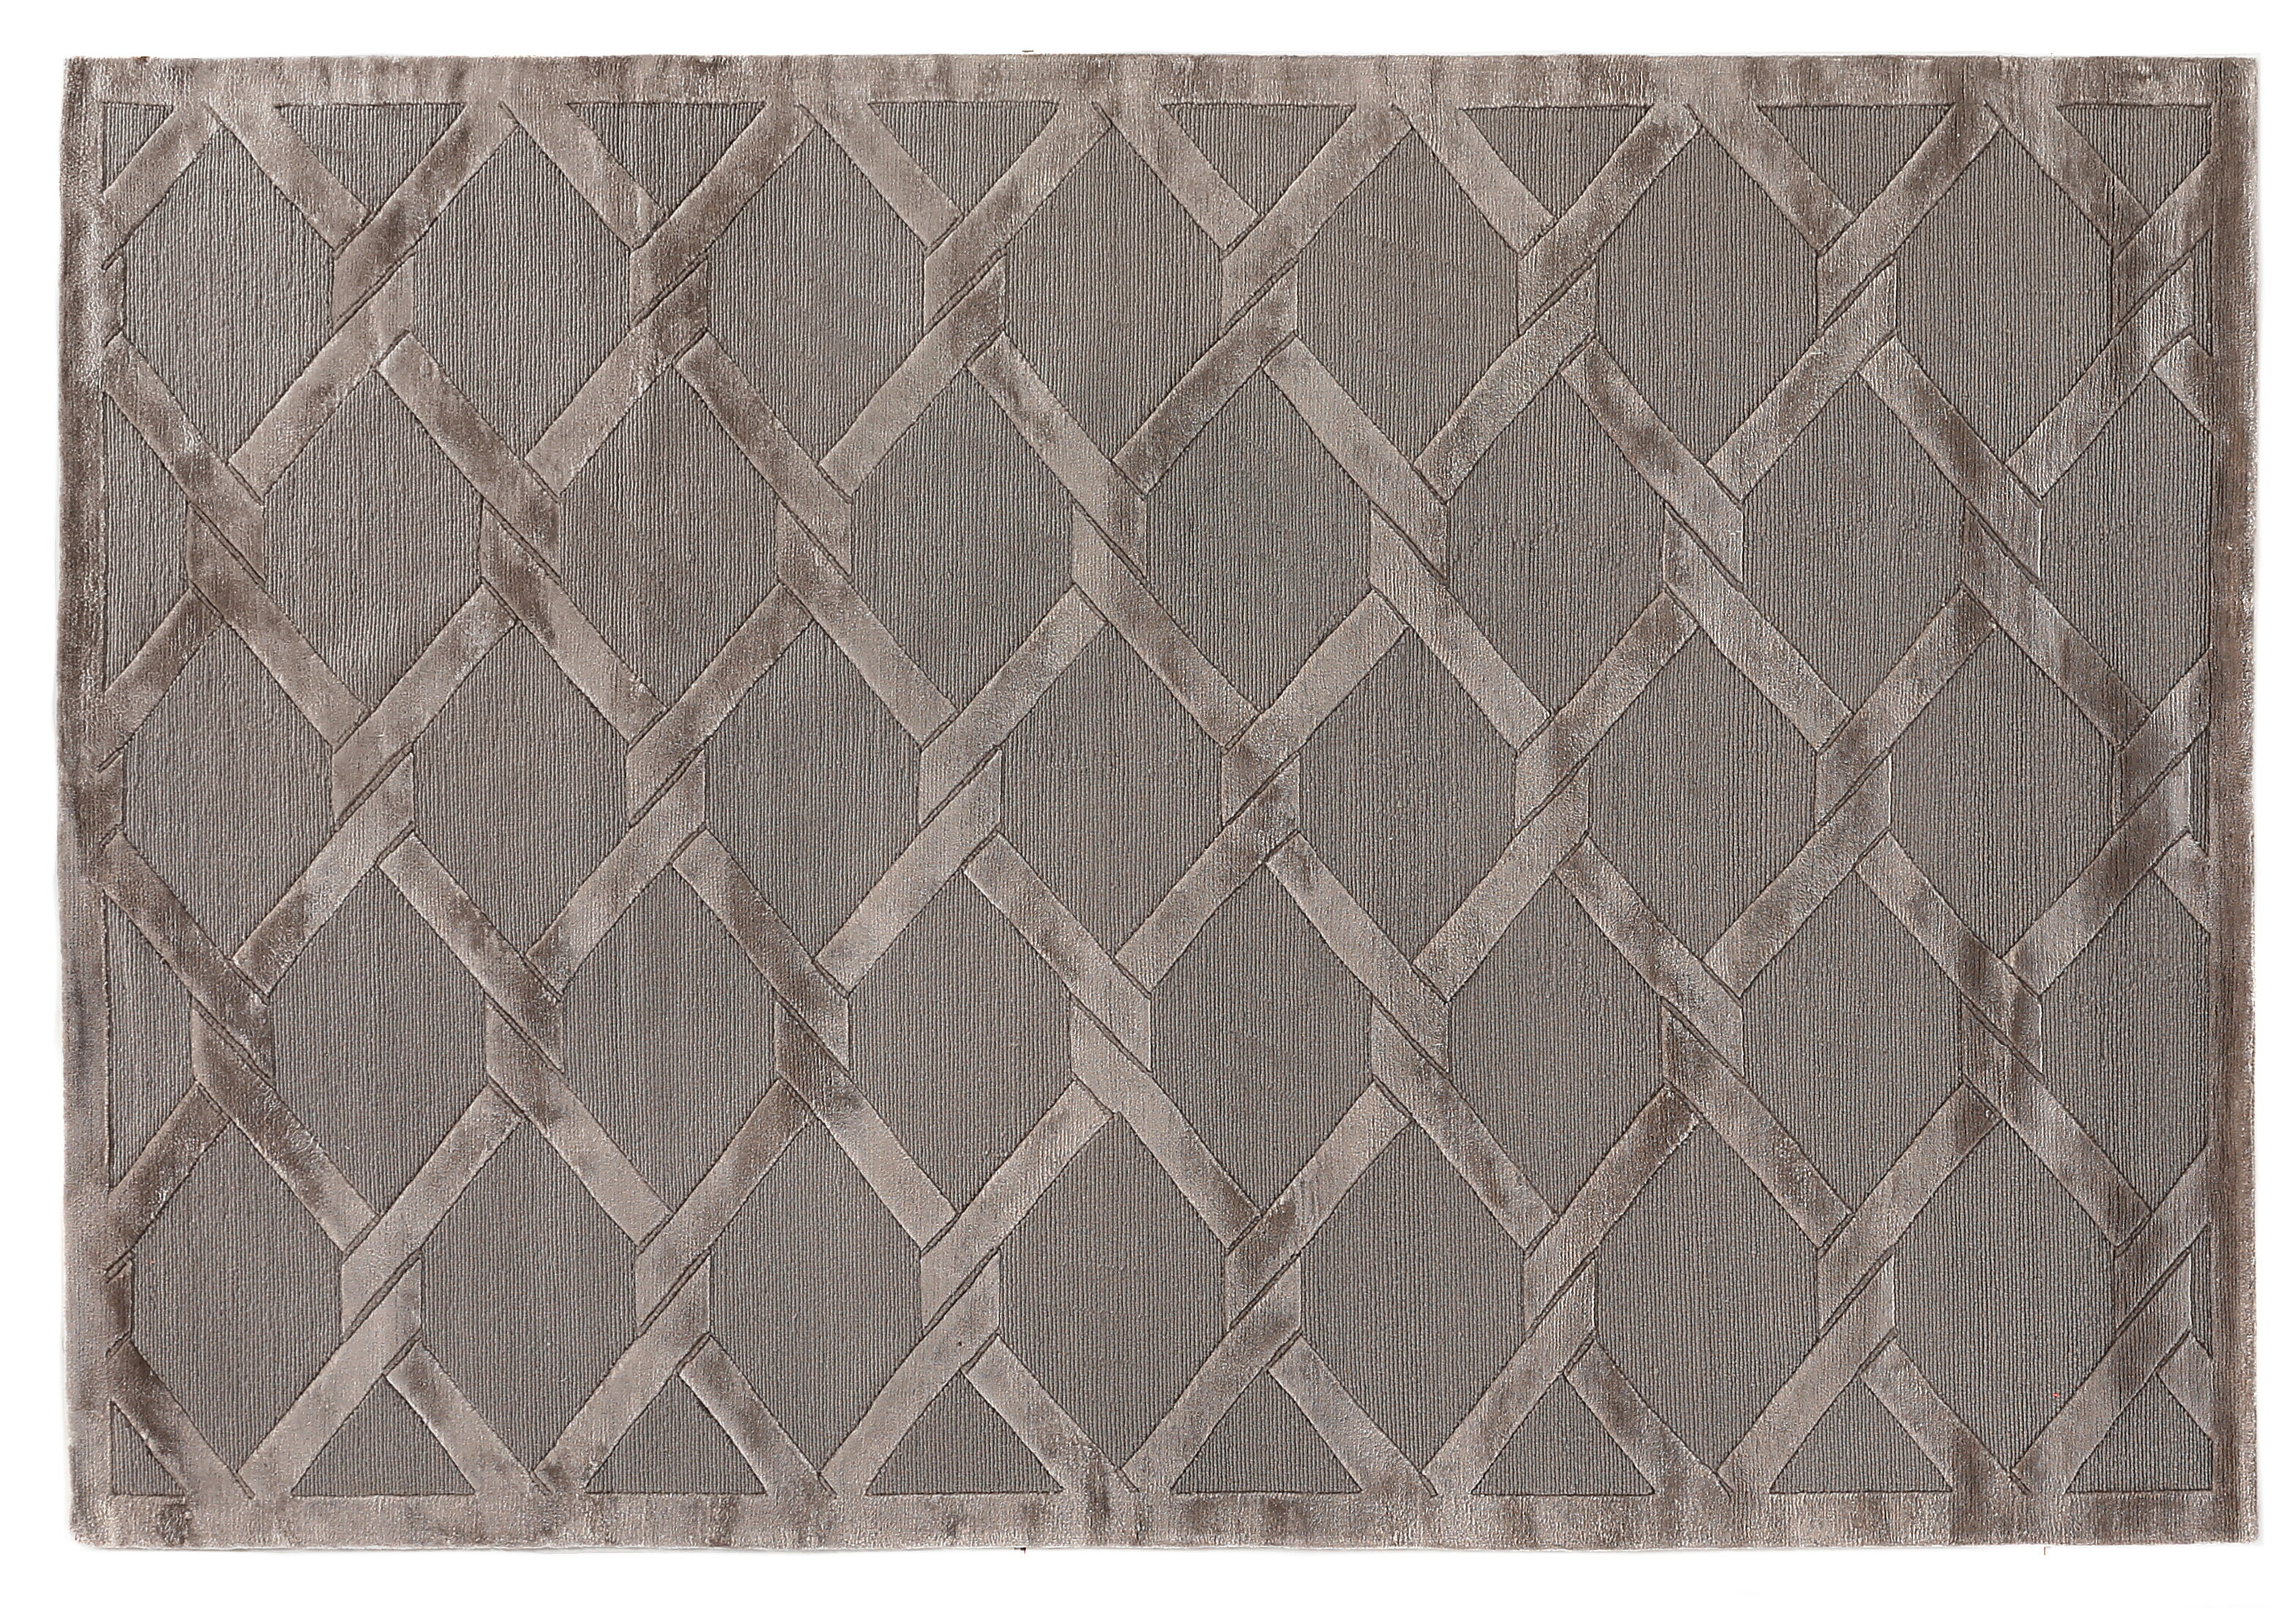 Exquisite Rugs Metro Velvet Geometric Hand Knotted Wool Silk Dark Gray Brown Area Rug Perigold